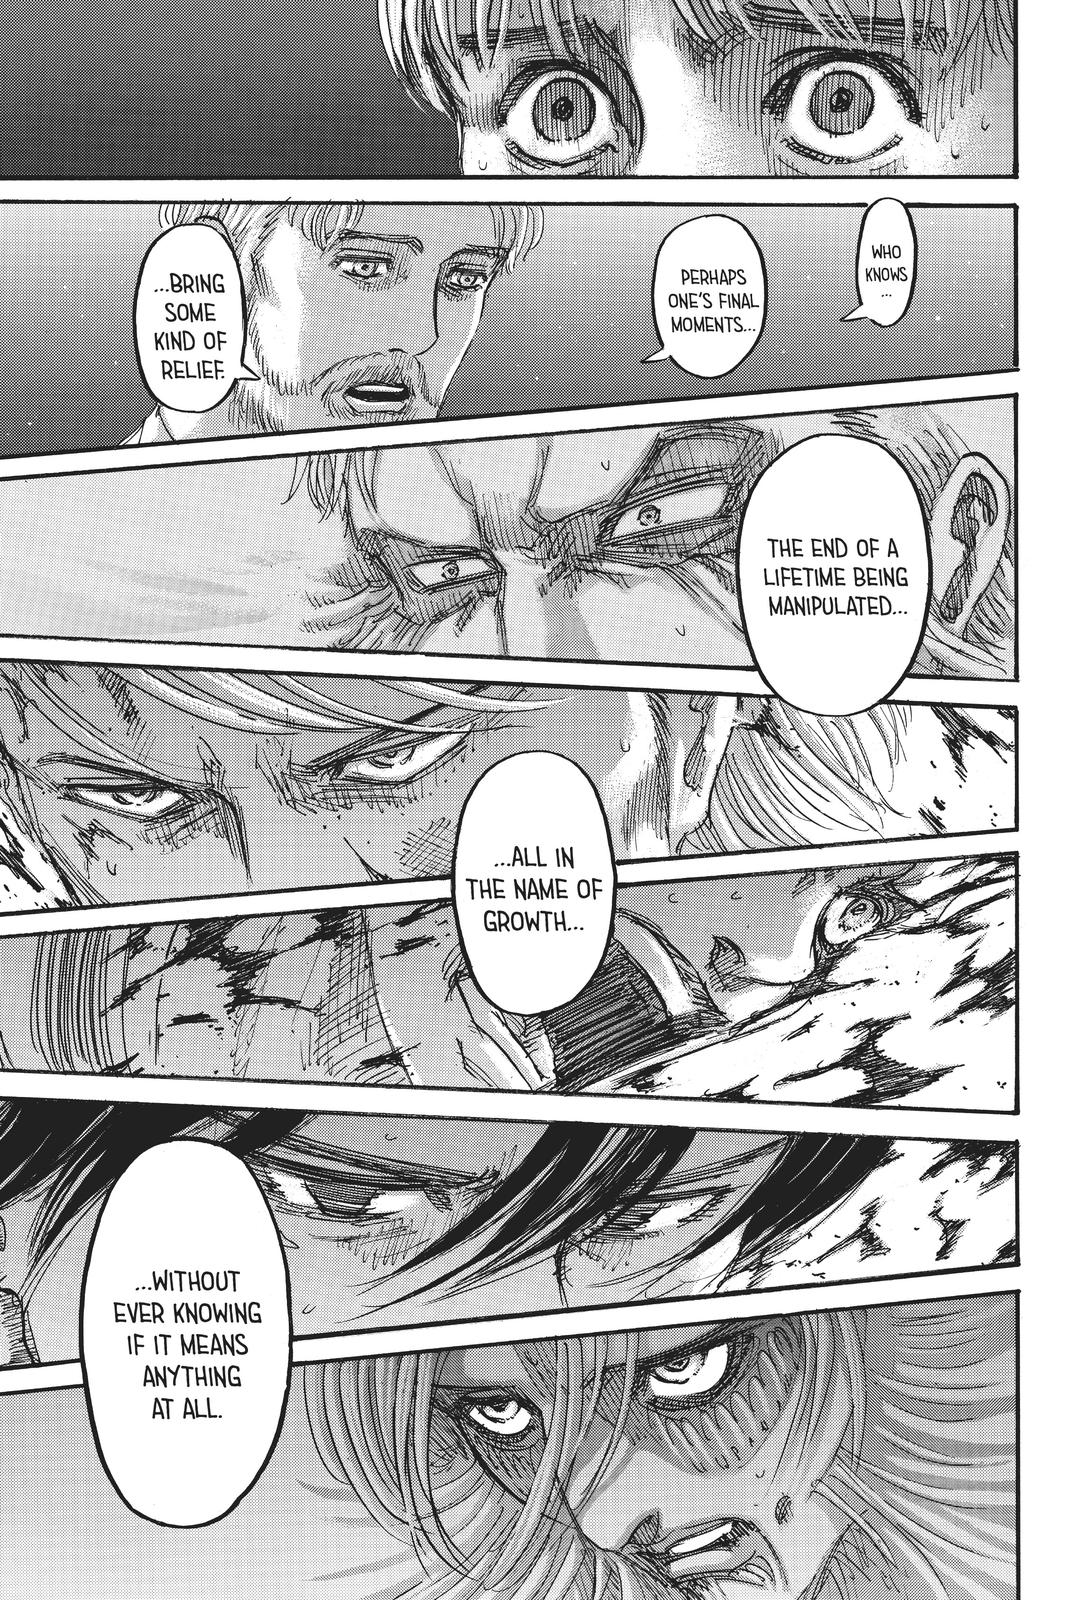 Shingeki No Kyojin Chapter 137 Read Shingeki No Kyojin Manga Online A century ago, the grotesque giants known as titans appeared and consumed all but a few thousand humans. shingeki no kyojin chapter 137 read